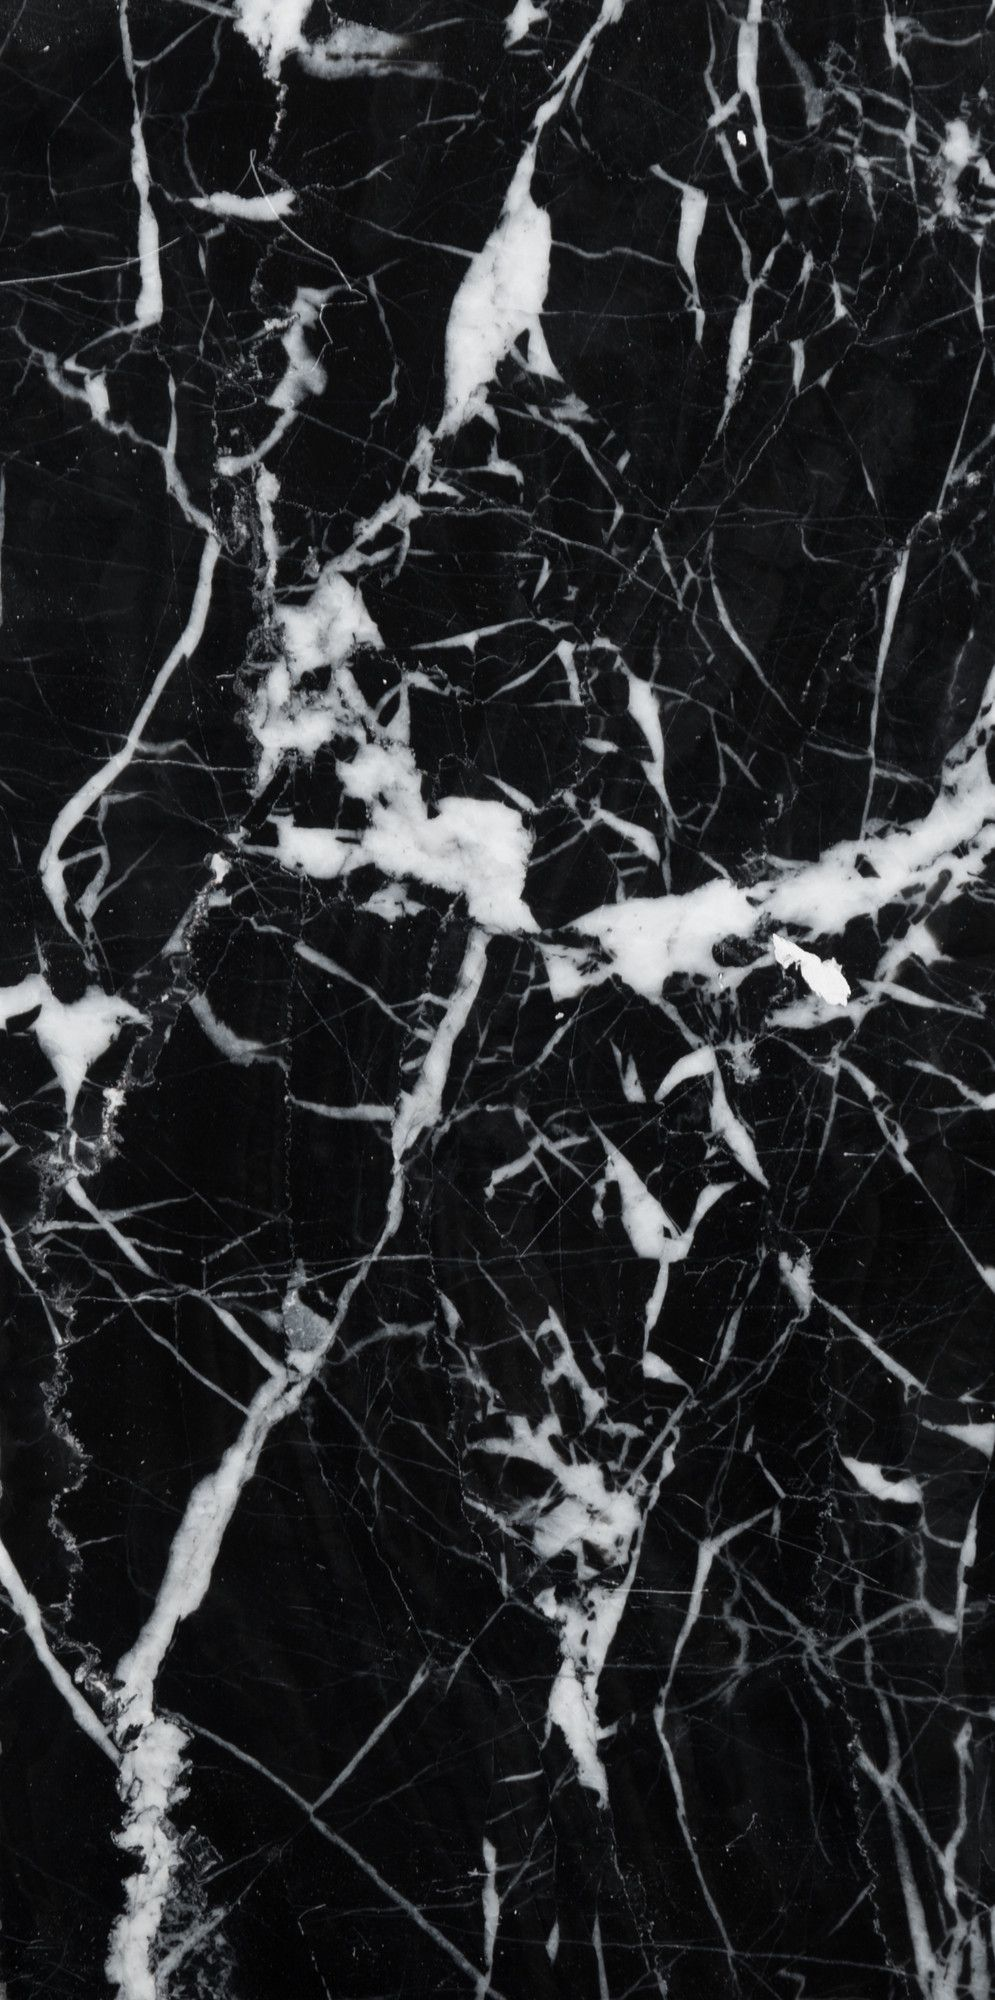 Black And White Marble Wallpapers Top Free Black And White Marble Backgrounds Wallpaperaccess